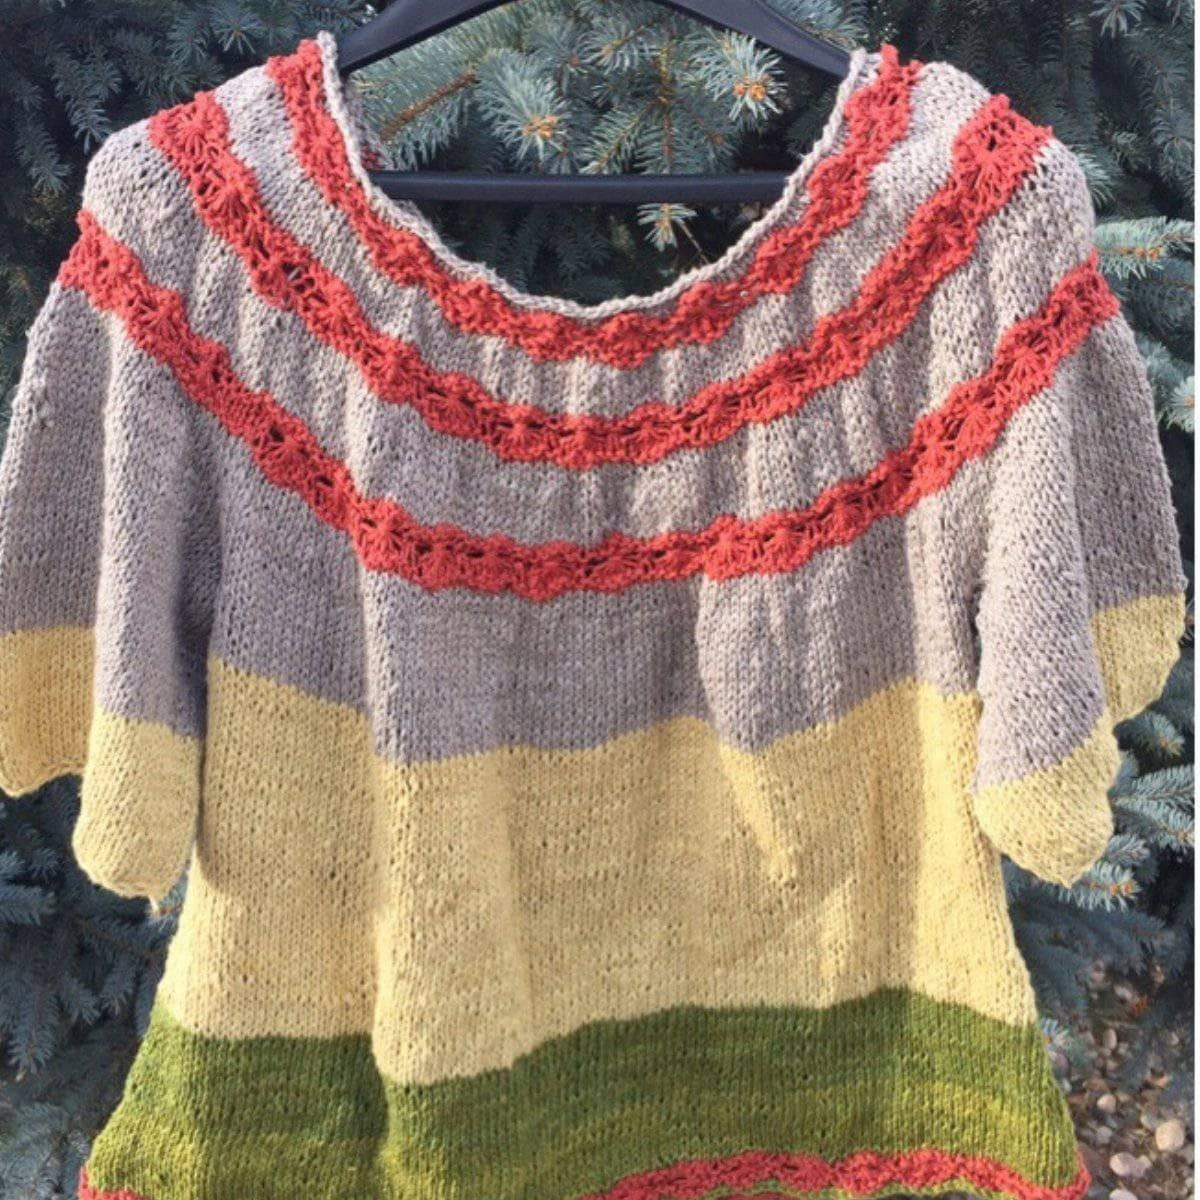 Flowers-in-a-Row Sweater Knitting Kit-Darn Good Yarn-superbulky